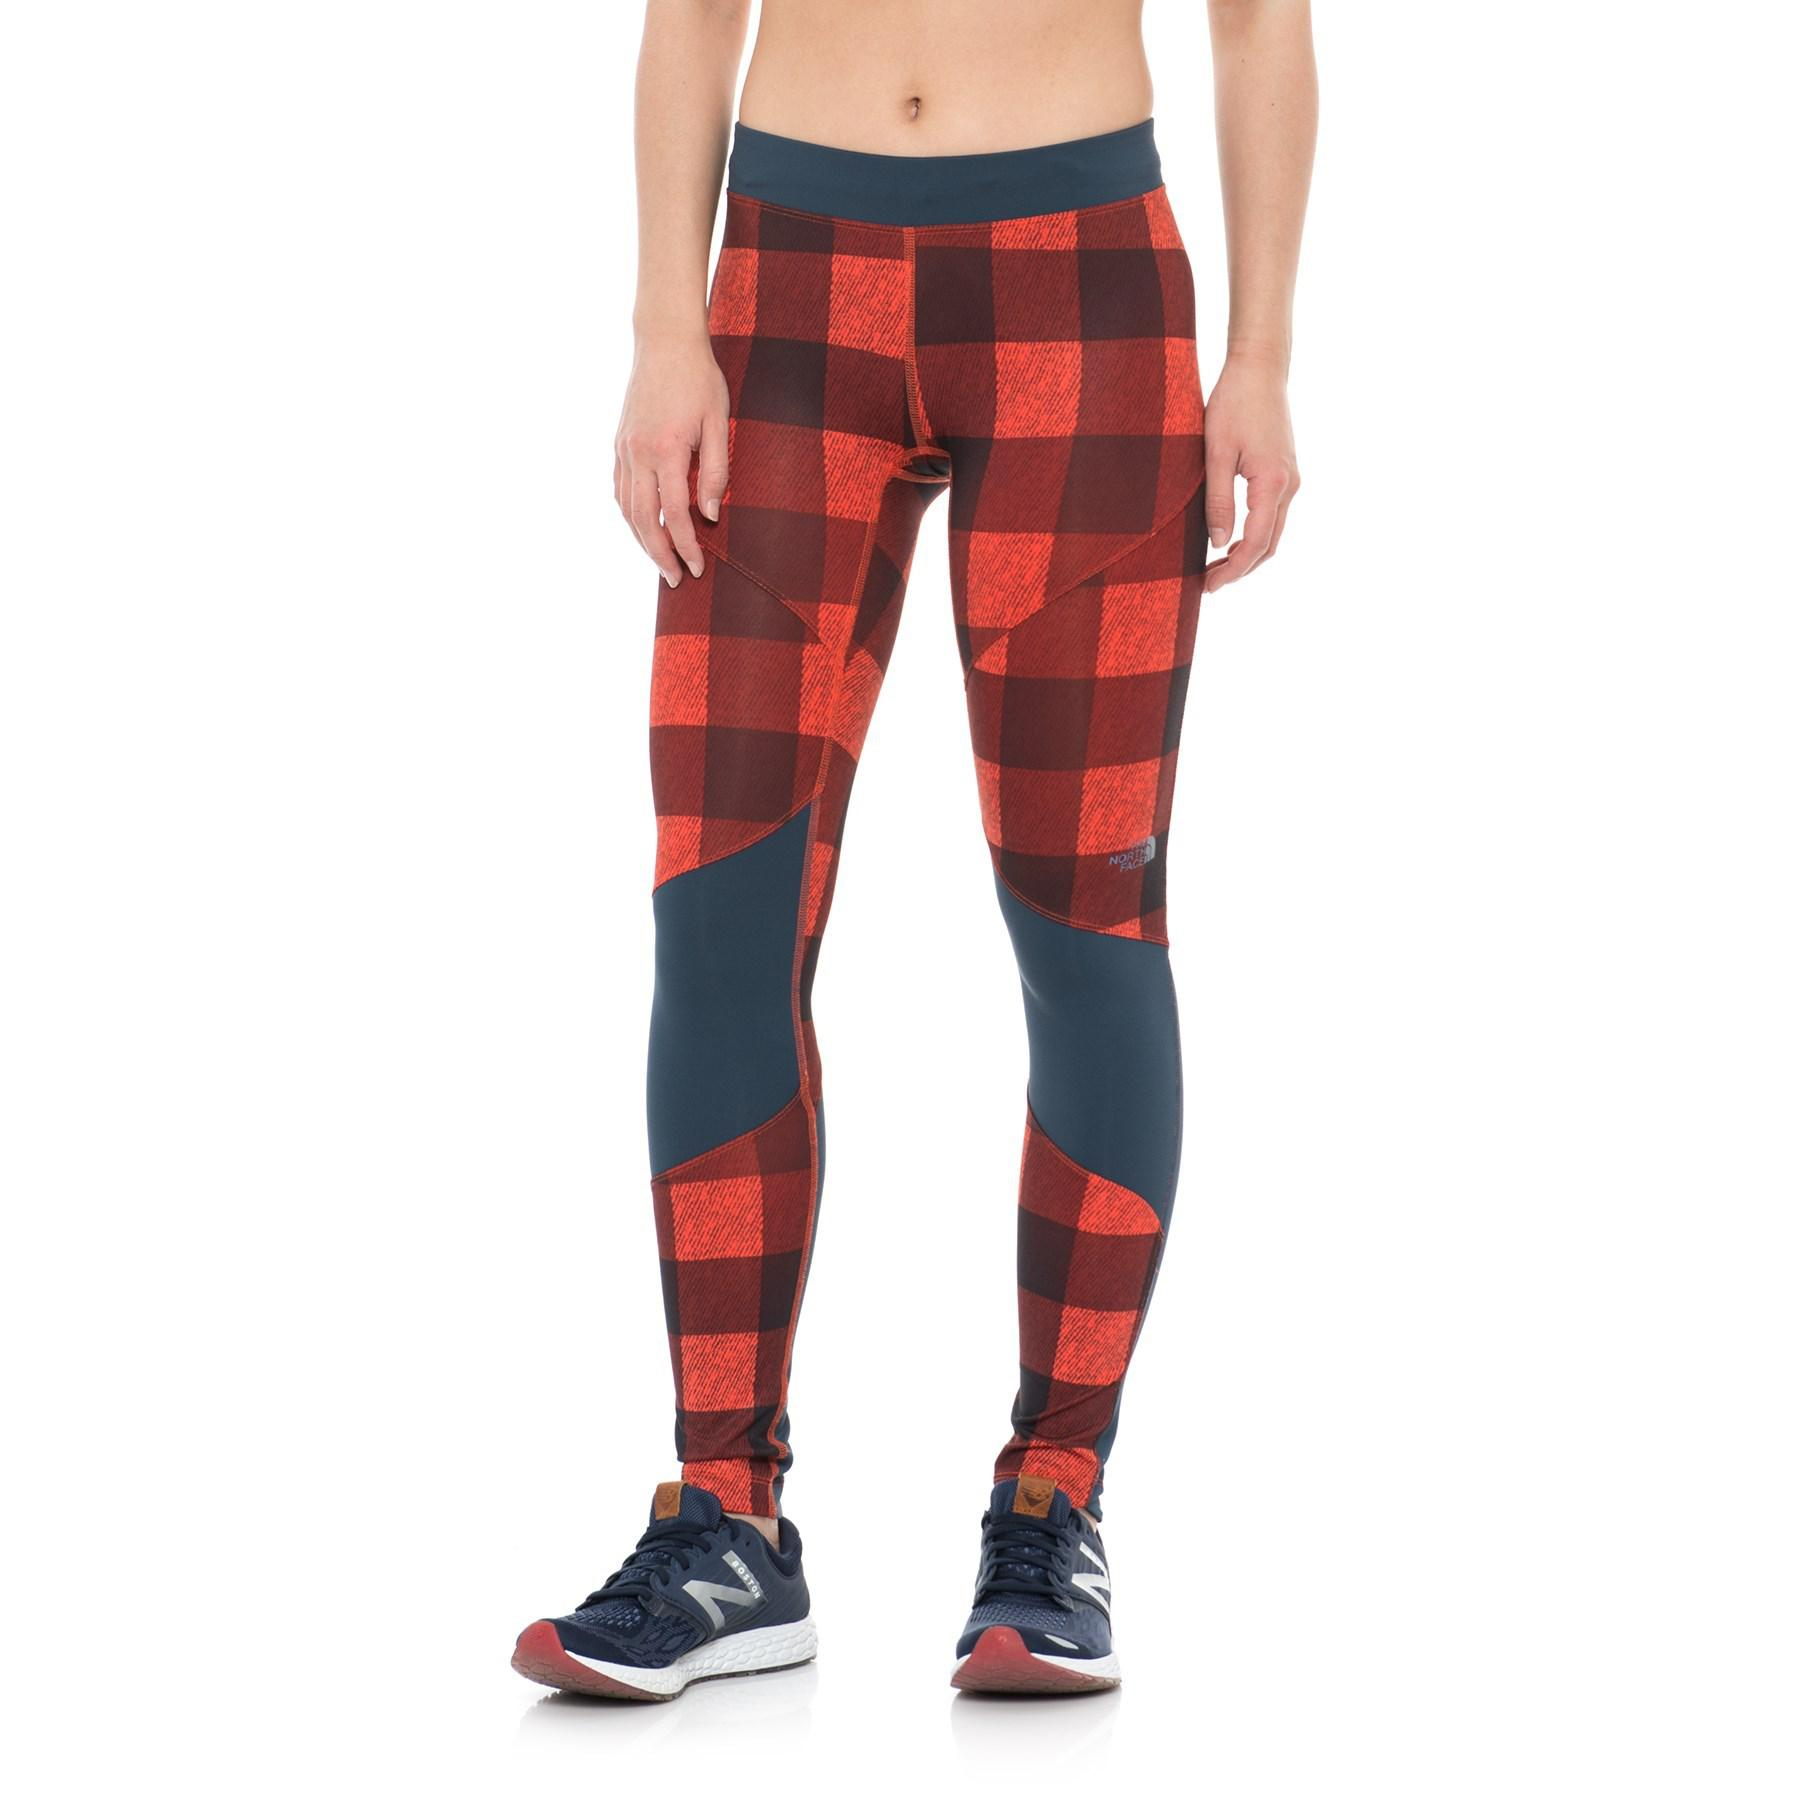 d72398ec3 The North Face Red Motus Running Tights Iii (for Women)